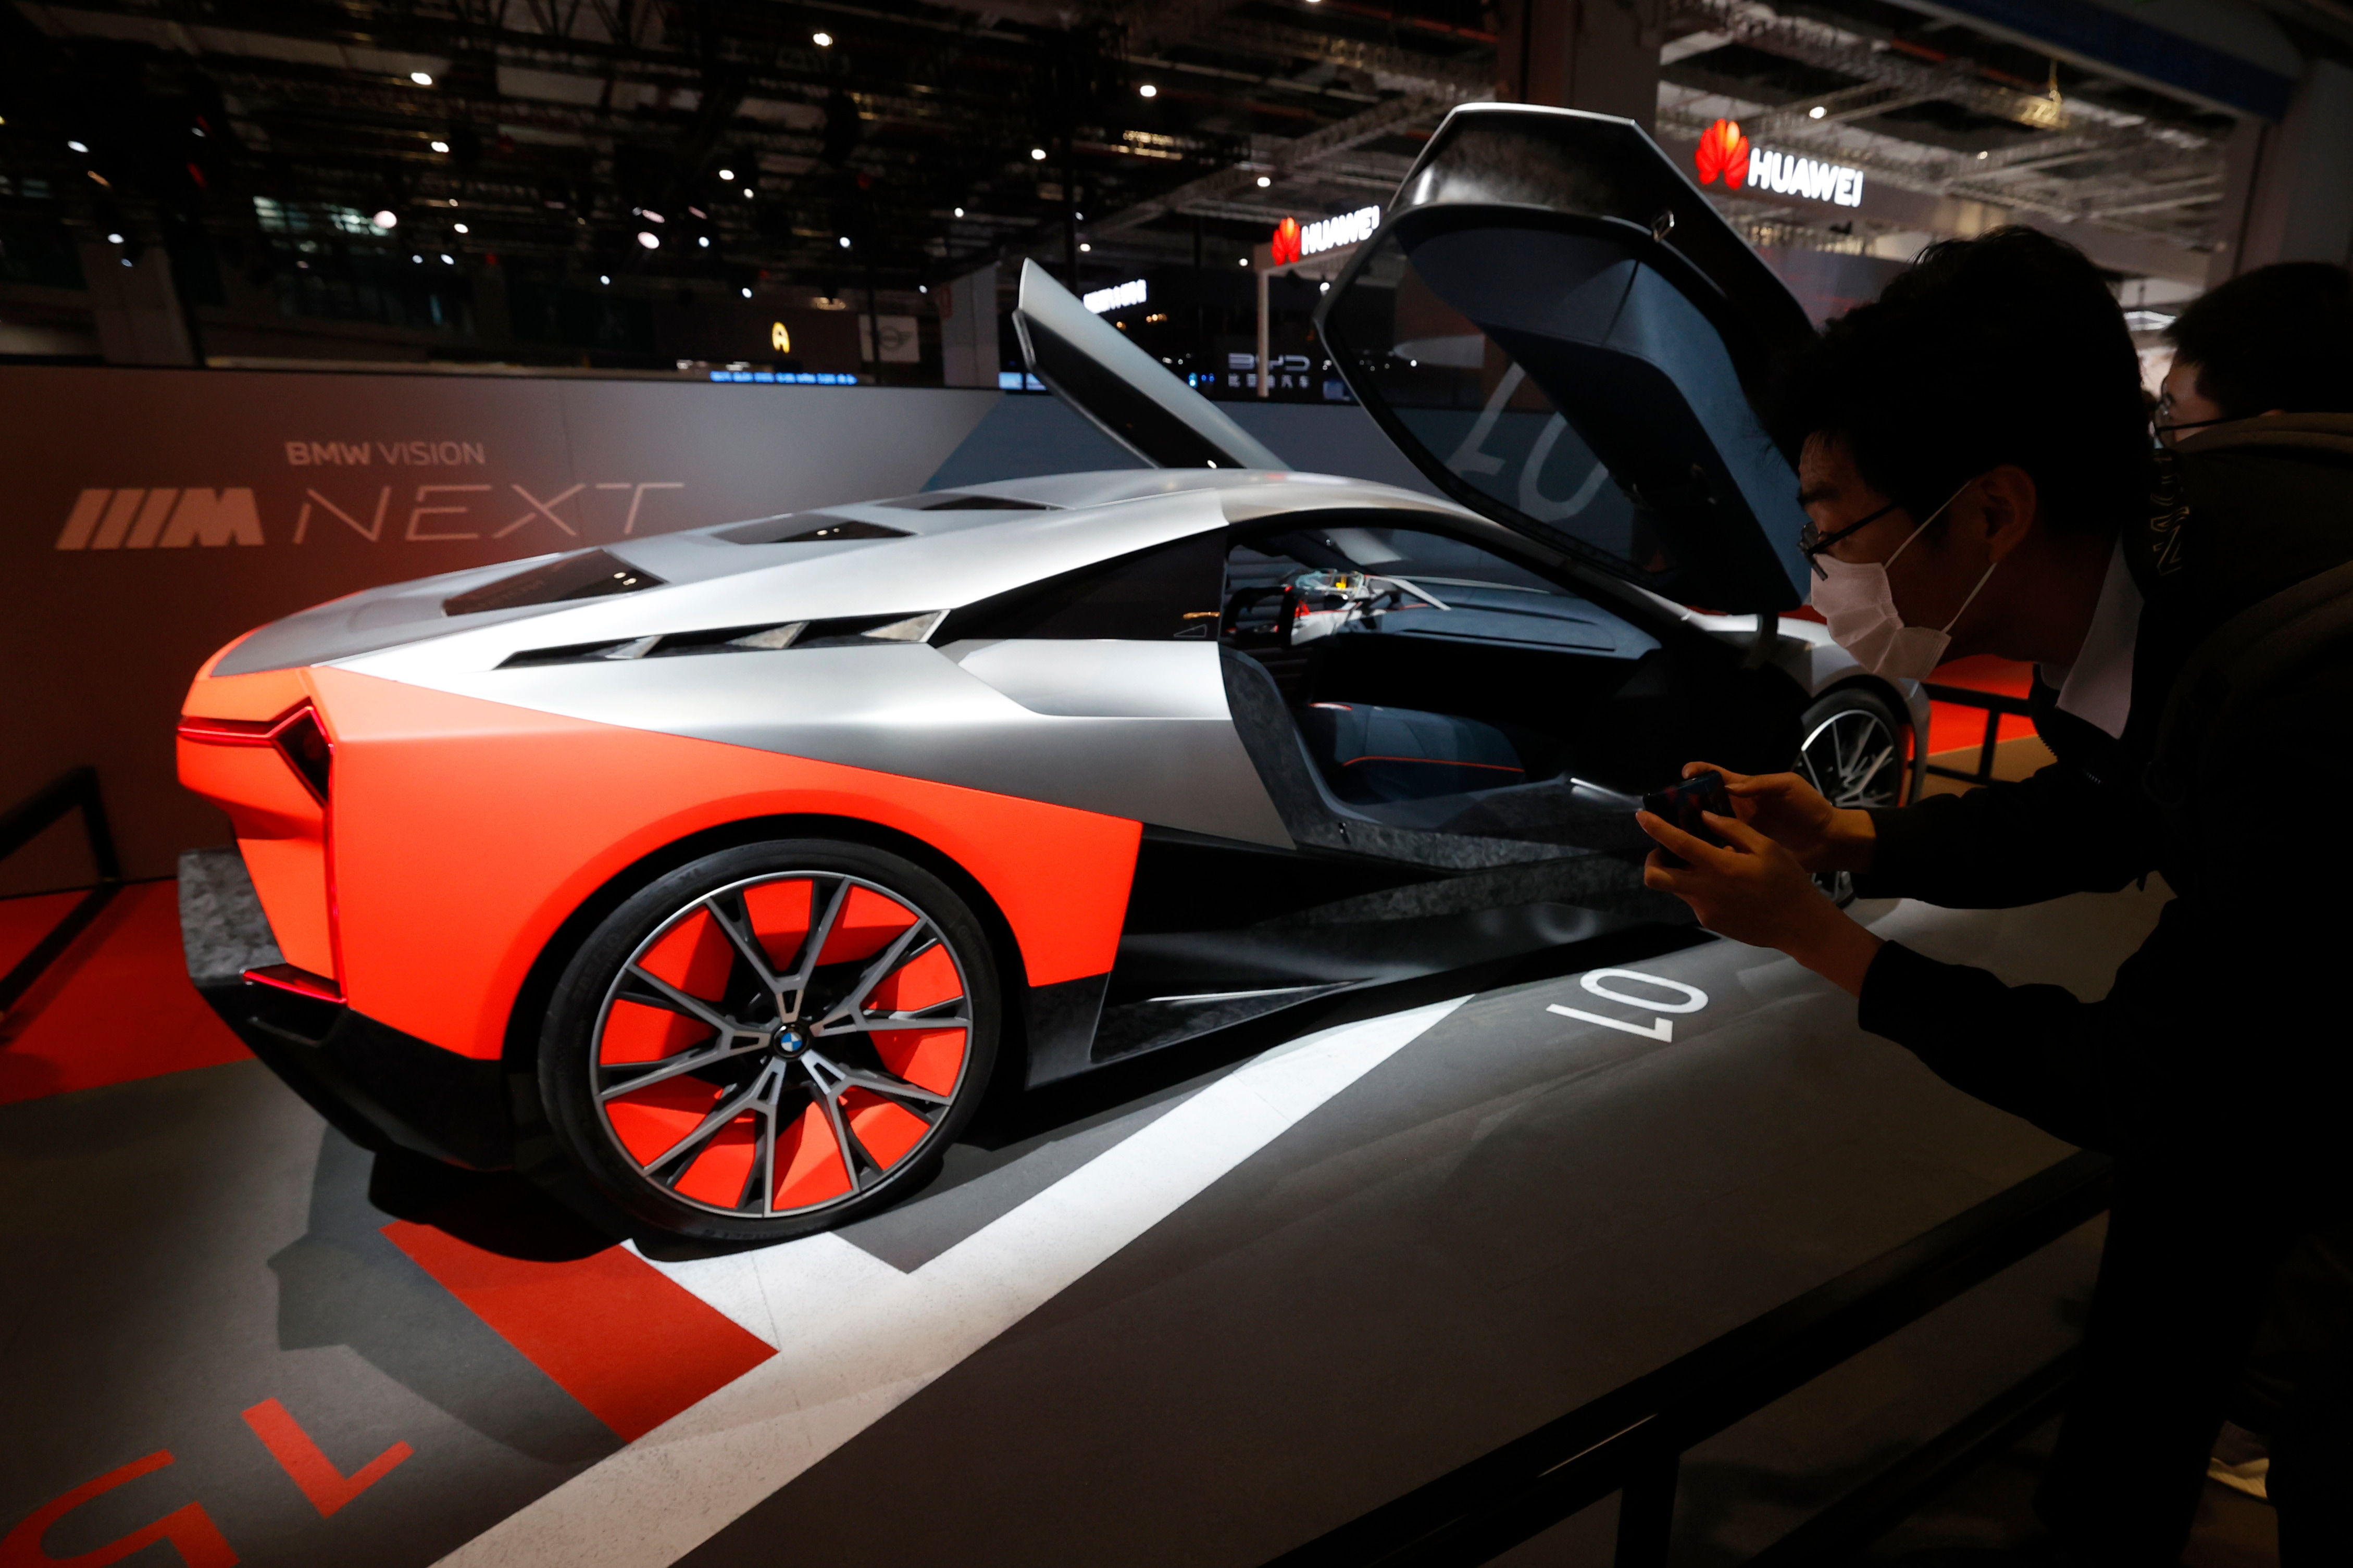 A visitor looks at the BMW Vision Next concept car displayed at the BMW booth. He can be seen clicking pictures of the concept vehicle. (AP)